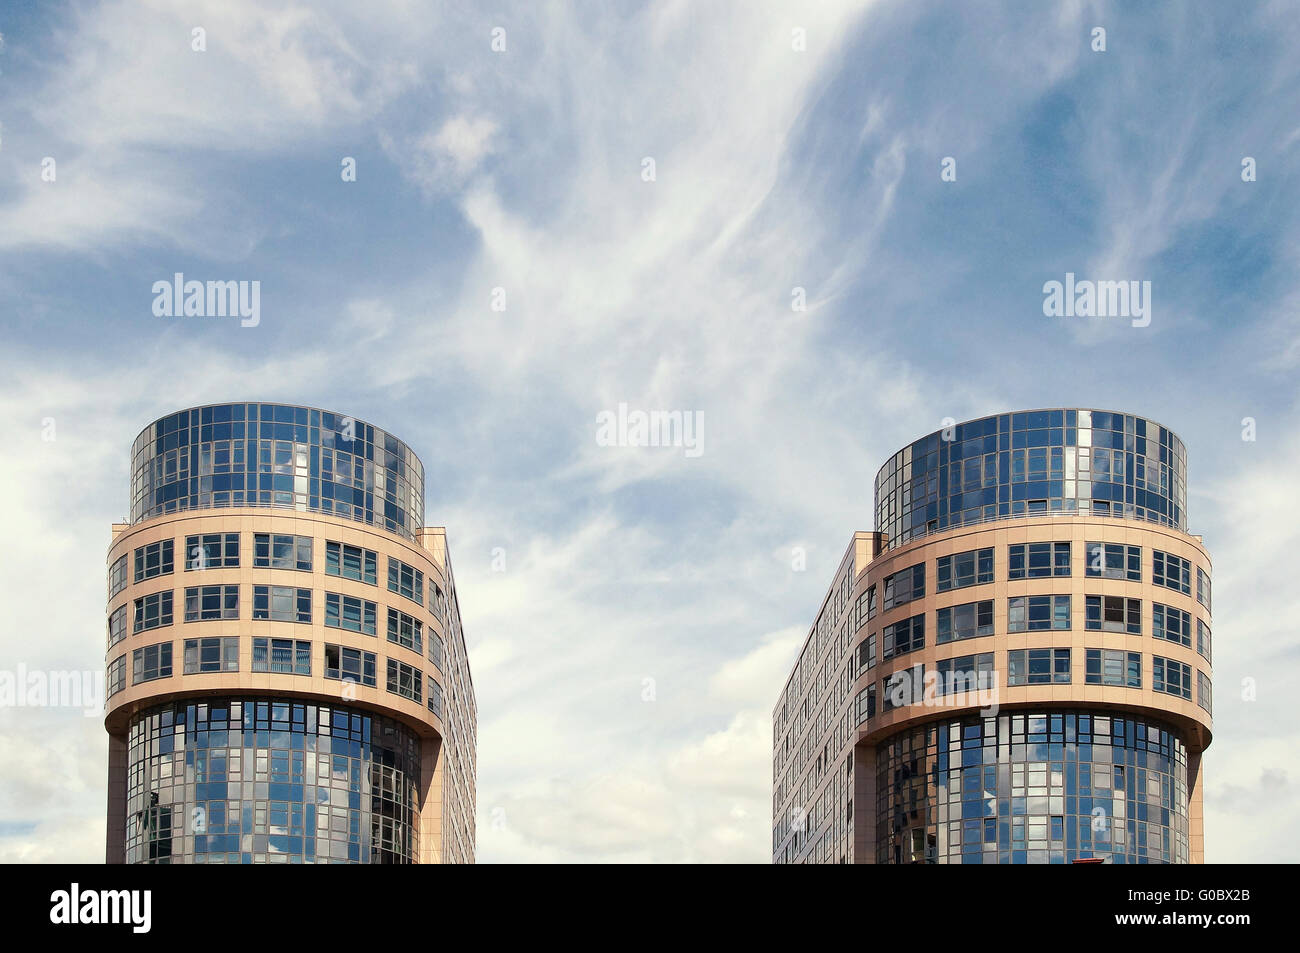 Interior Ministry Berlin Germany - Stock Image